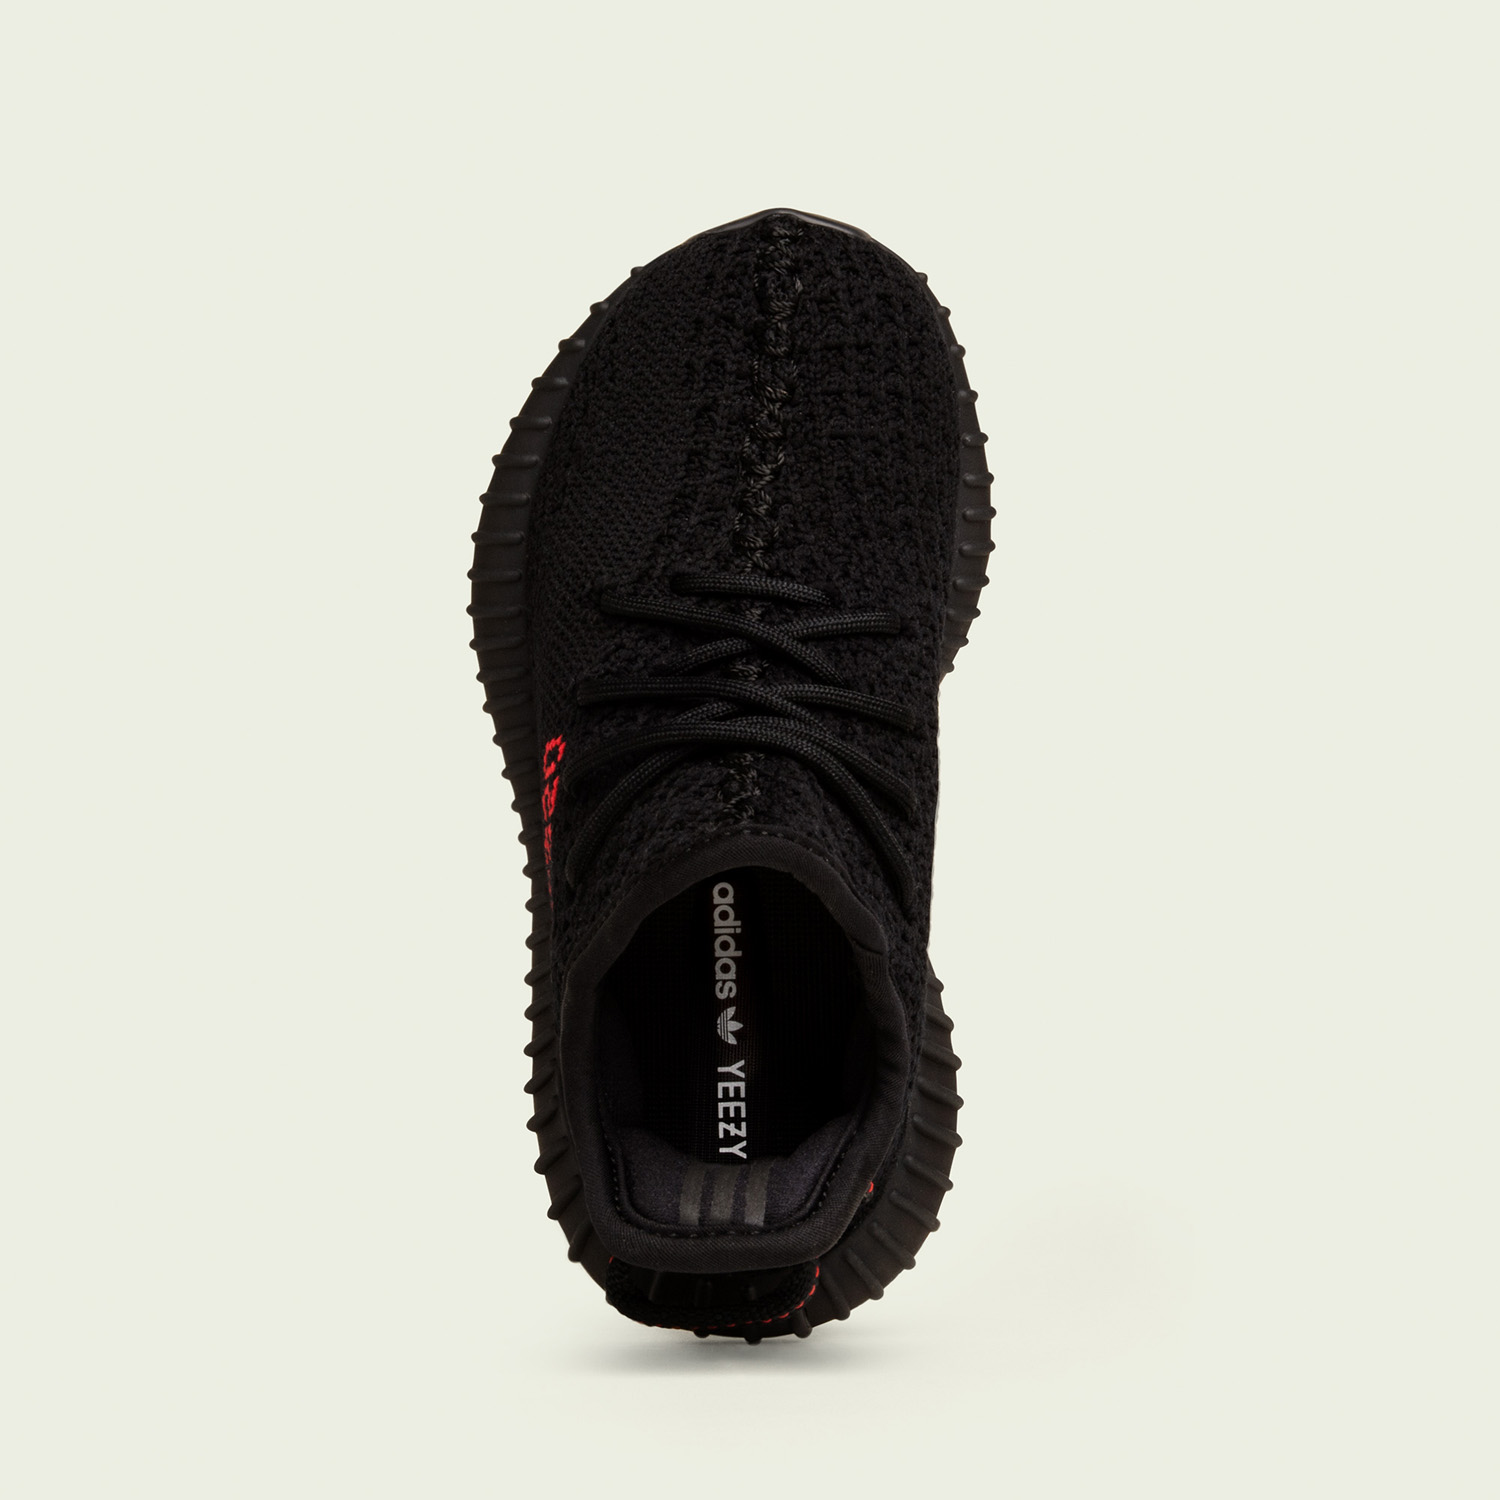 db289994c160 more adidas YEEZY Releases. infant-yeezy-boost-350-v2